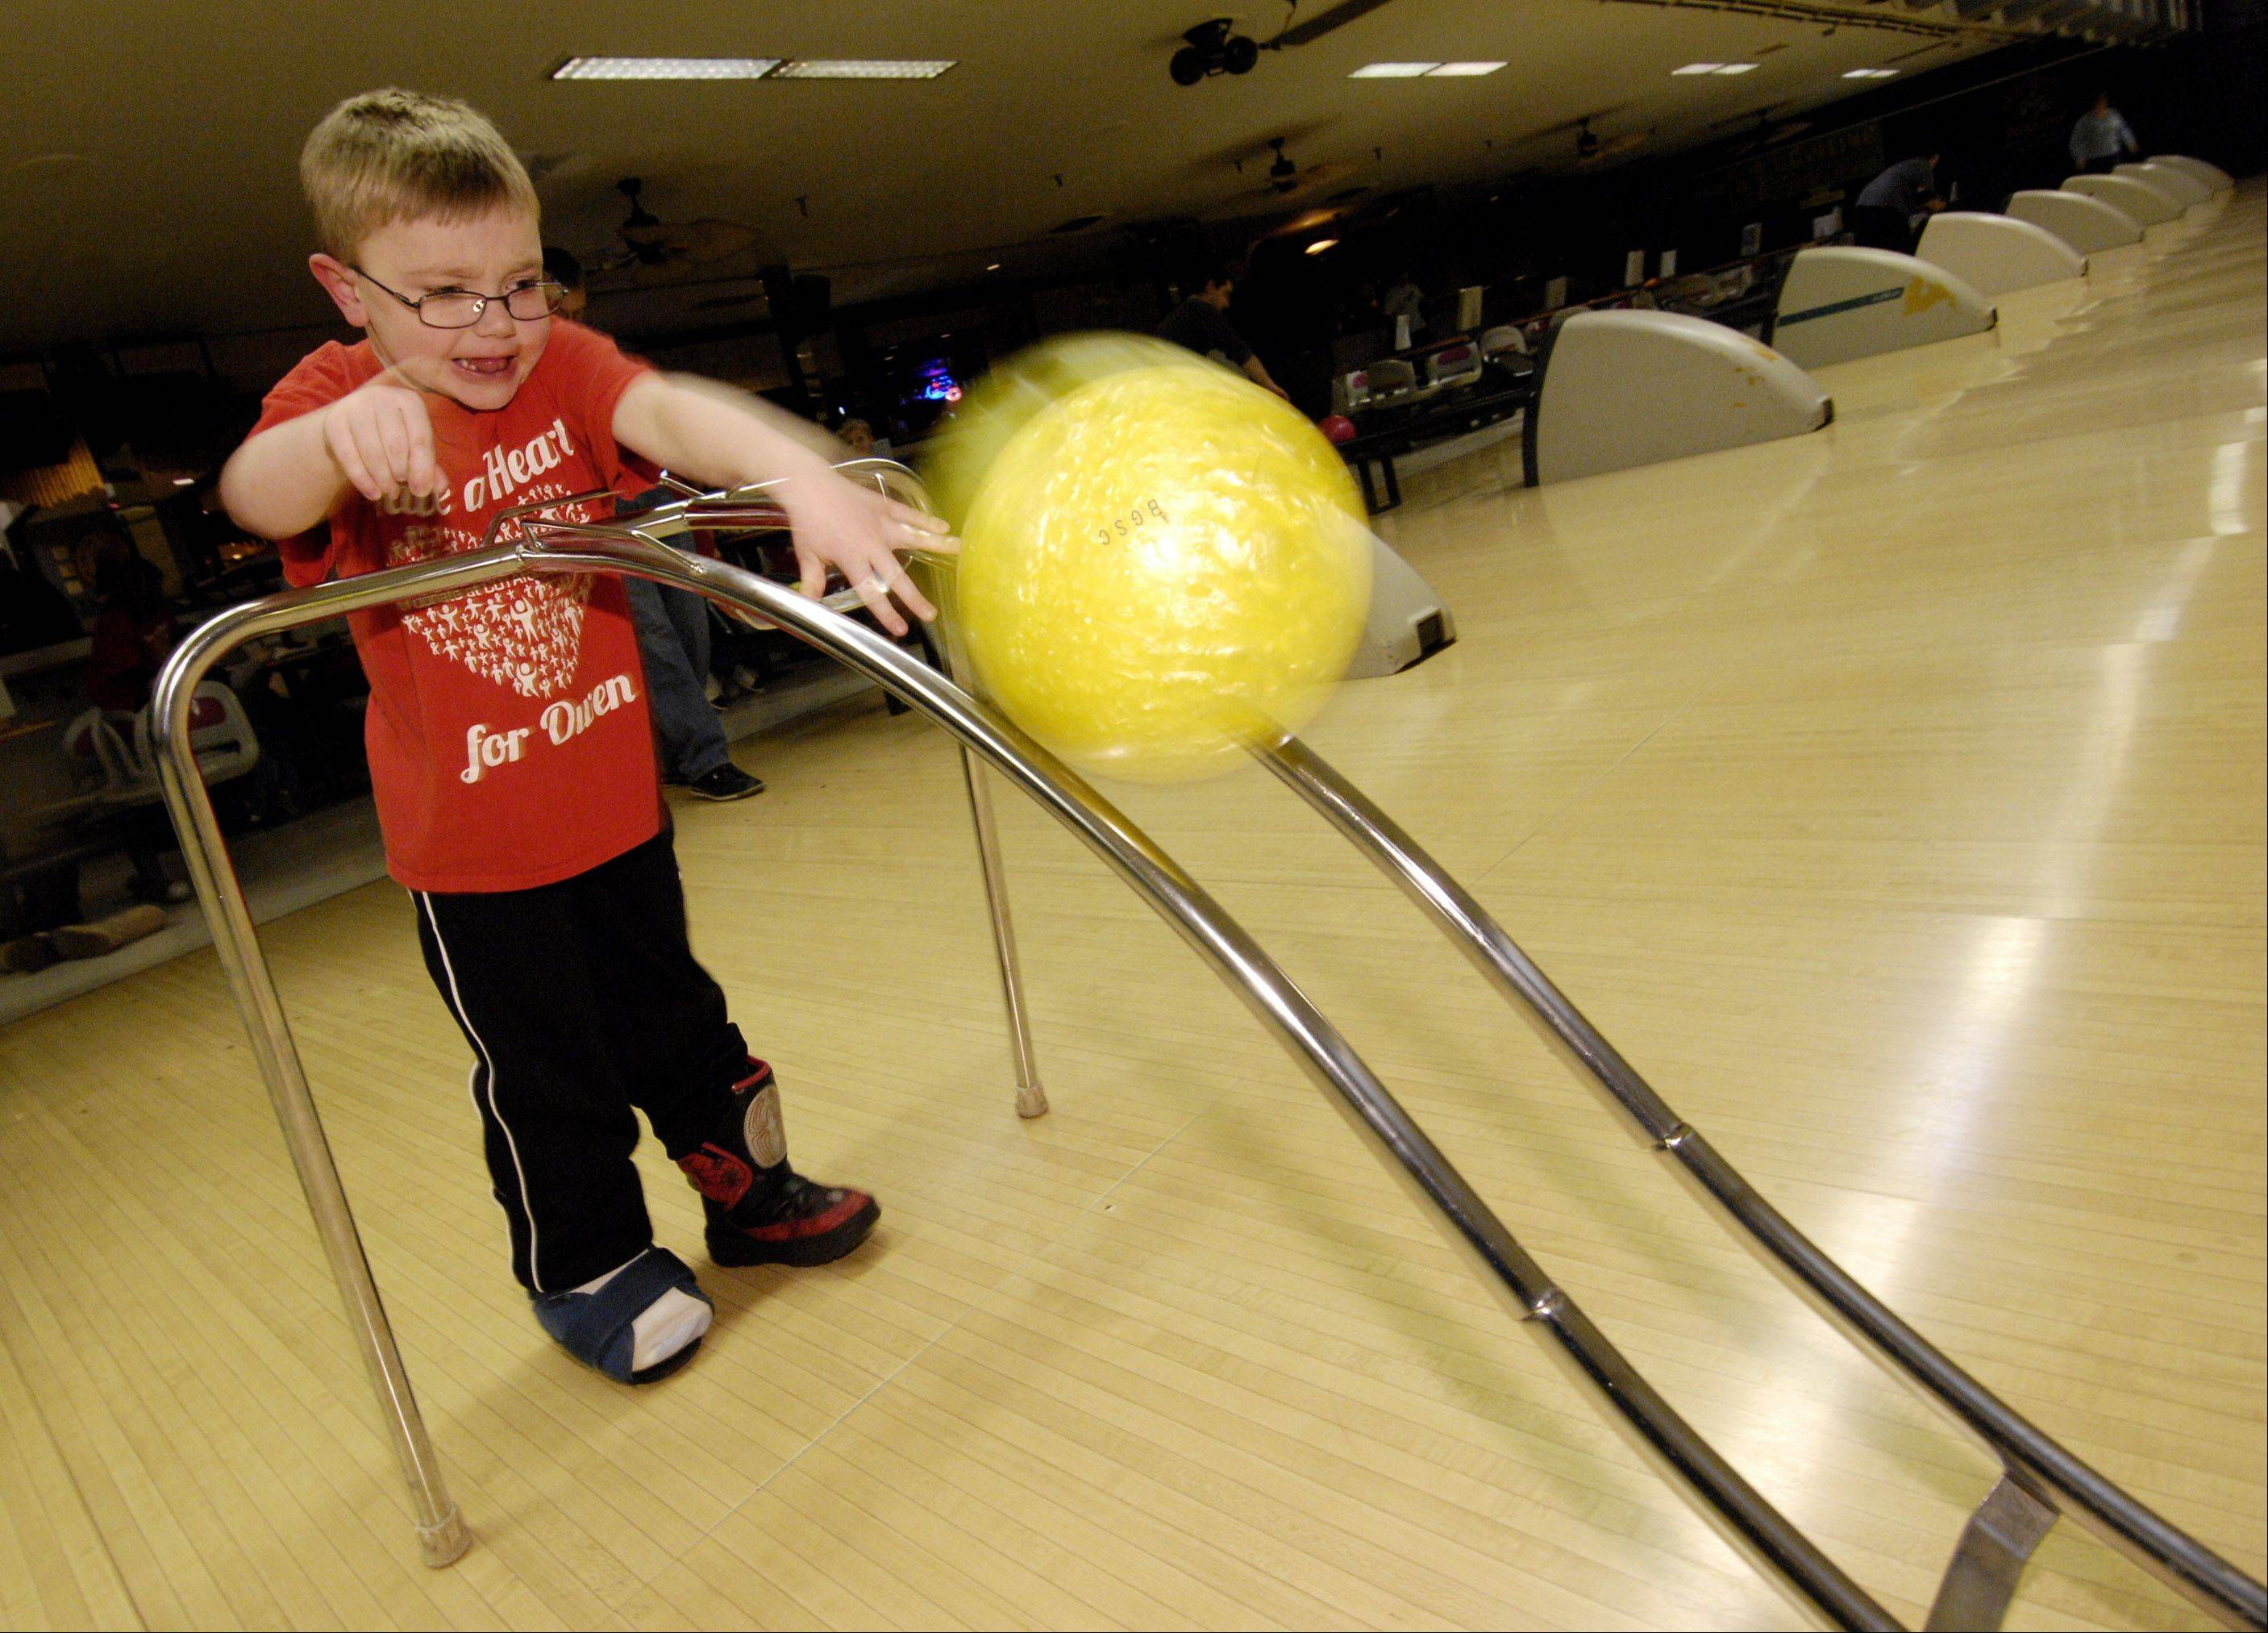 Owen Payton, 6, of West Chicago, bowls during the Children's Organ Transplant Association's Have a Heart for Owen bowling fundraiser at Bowling Green Sports Center Sunday. Payton, who was born with a congenital heart defect, is in need of a heart transplant.